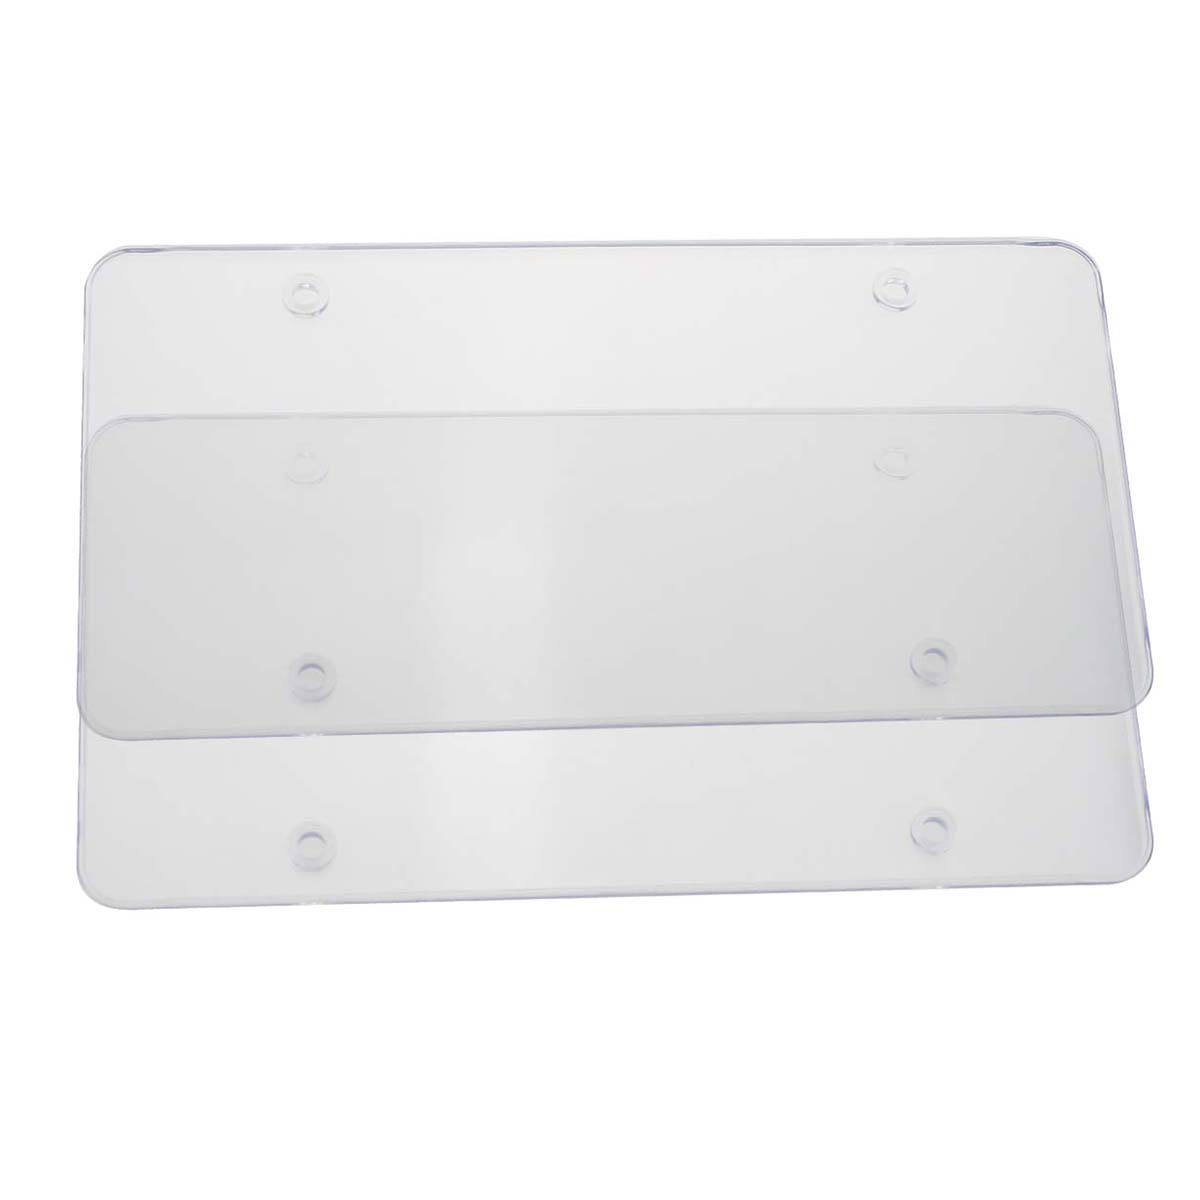 Reliable 2pcs License Plate Tag Frame Covers Bubble Shields Protector For Car Truck (clear)